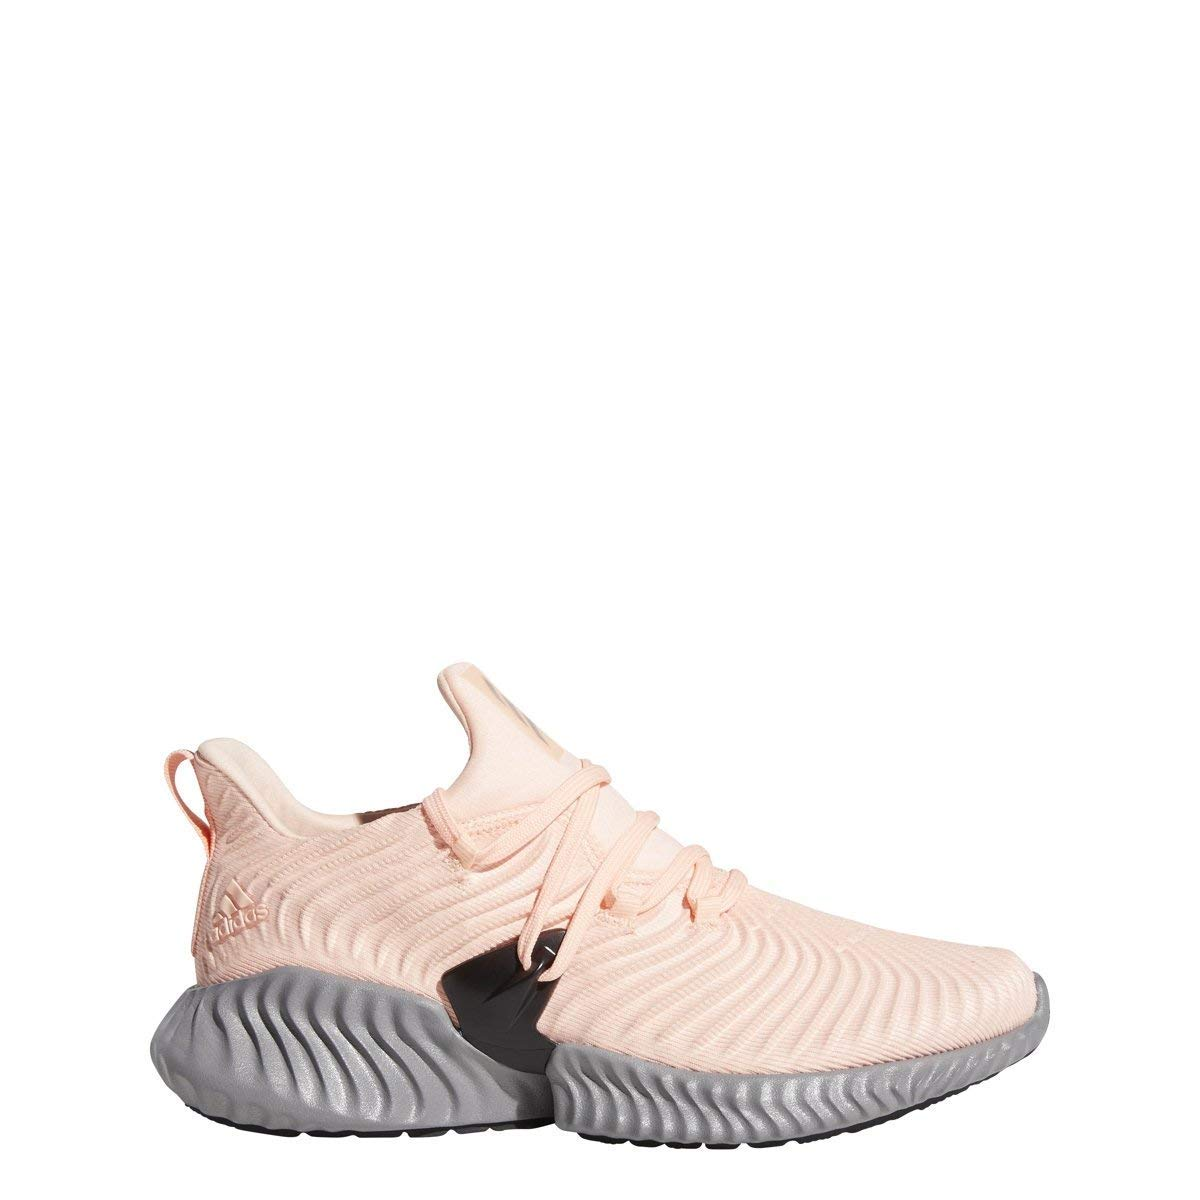 separation shoes eb05f 79e25 Amazon.com  adidas Alphabounce Instinct Shoe - Womens Running Orange   Road Running